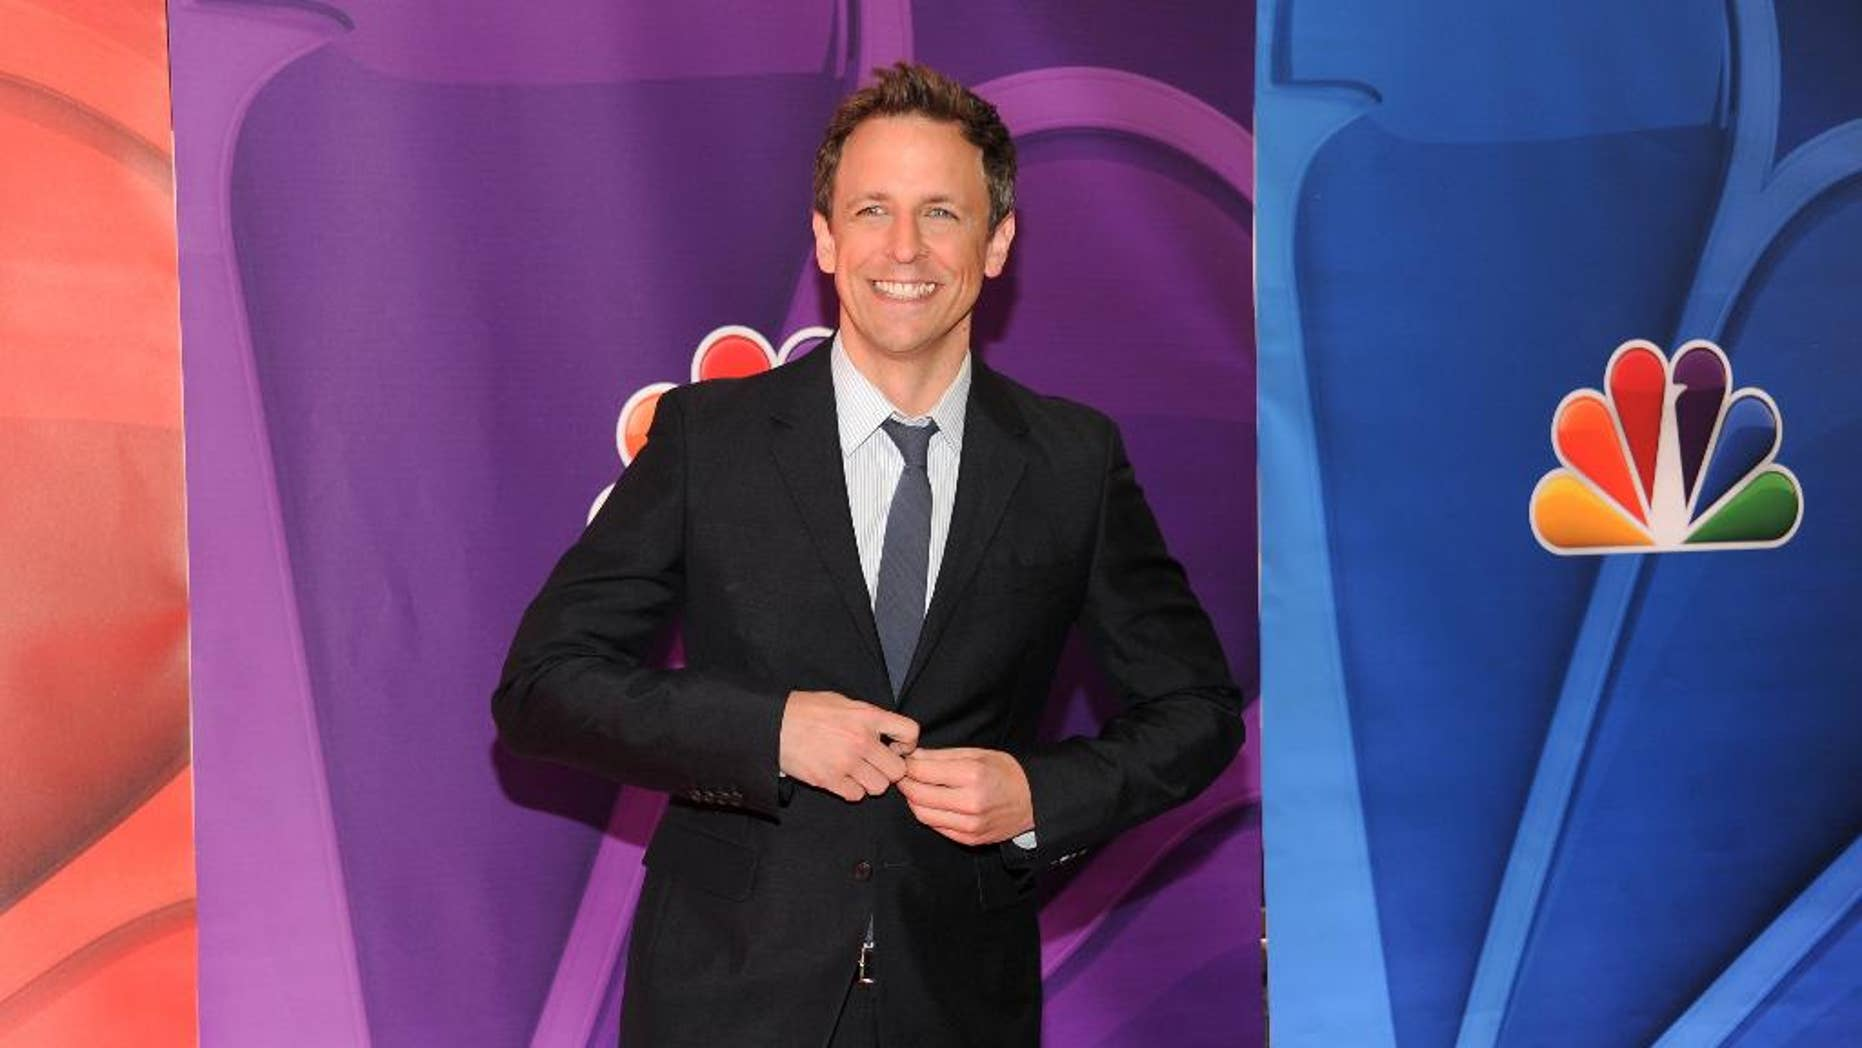 "FILE - Seth Meyers attends the NBC Network 2013 Upfront at Radio City Music Hall, in this May 13, 2013 file photo taken in New York. NBC, home to Meyers in his long stint on ""Saturday Night Live"" and his new late-night talk show, announced late Thursday April 24, 2014 that he'll host the 66th edition of the Emmys set to air on the network August 25. (Photo by Evan Agostini/Invision/AP, File)"